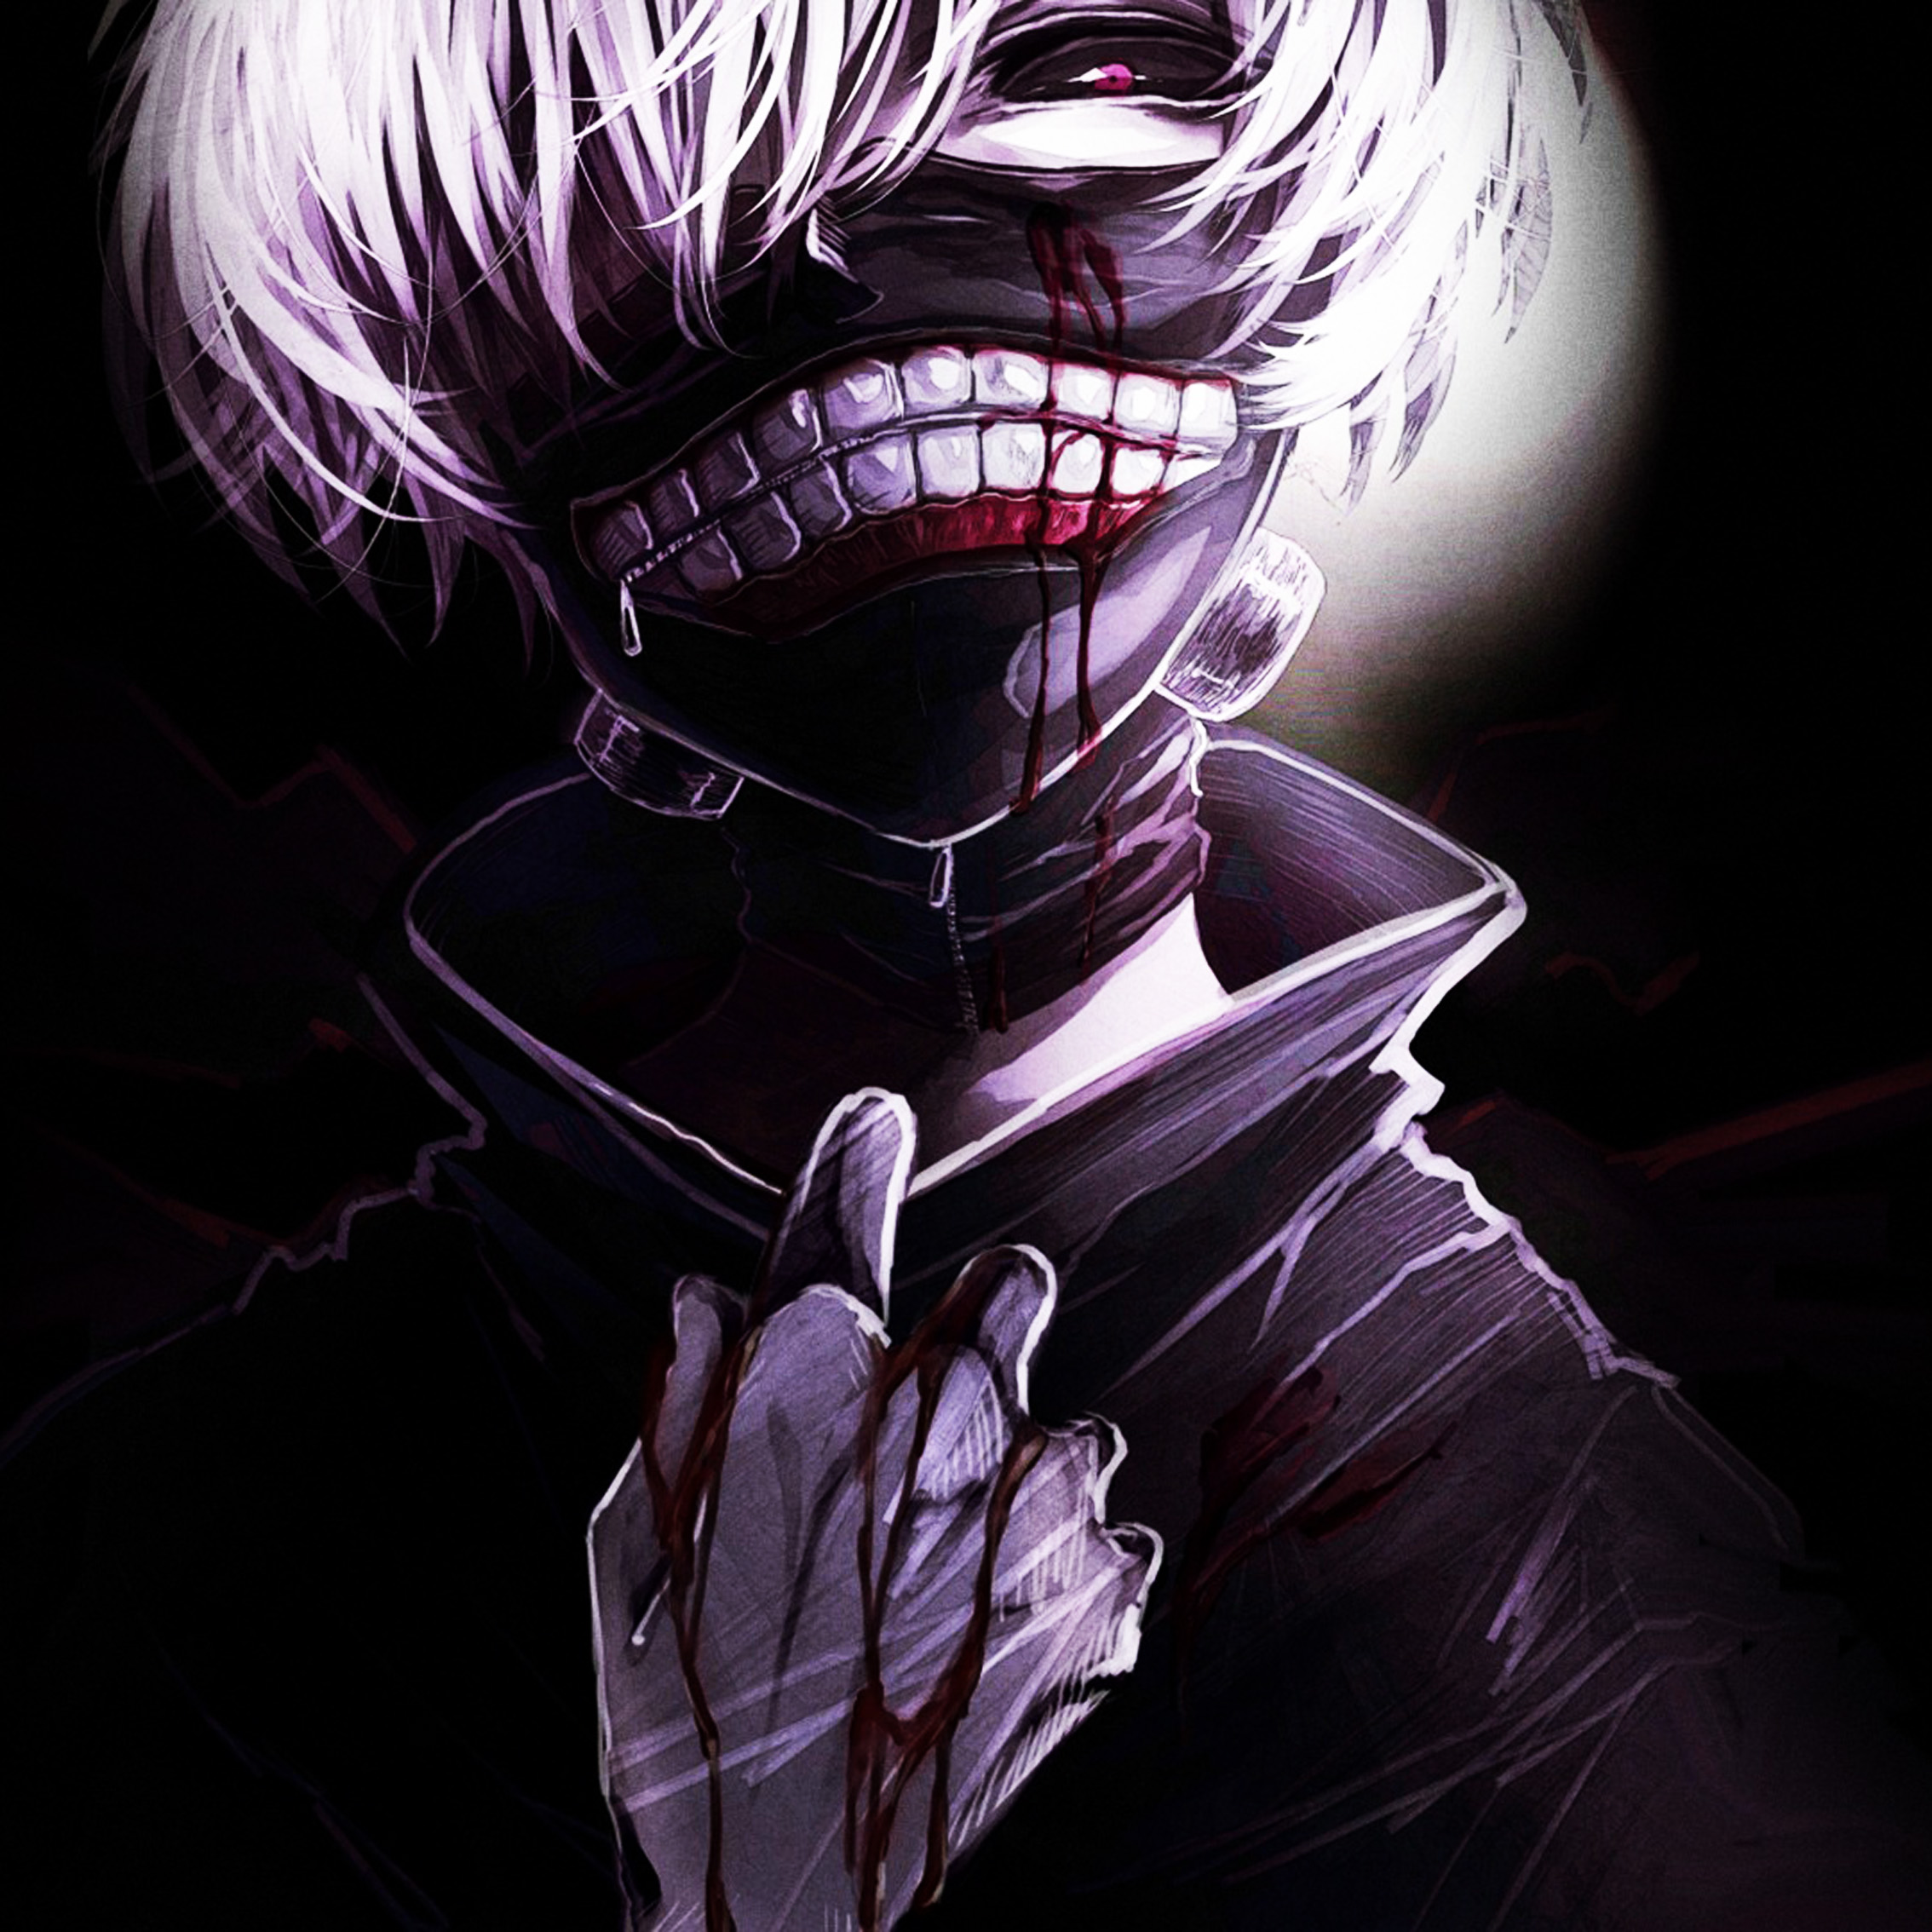 Anime Guy Blood Www Pixshark Com Images Galleries With